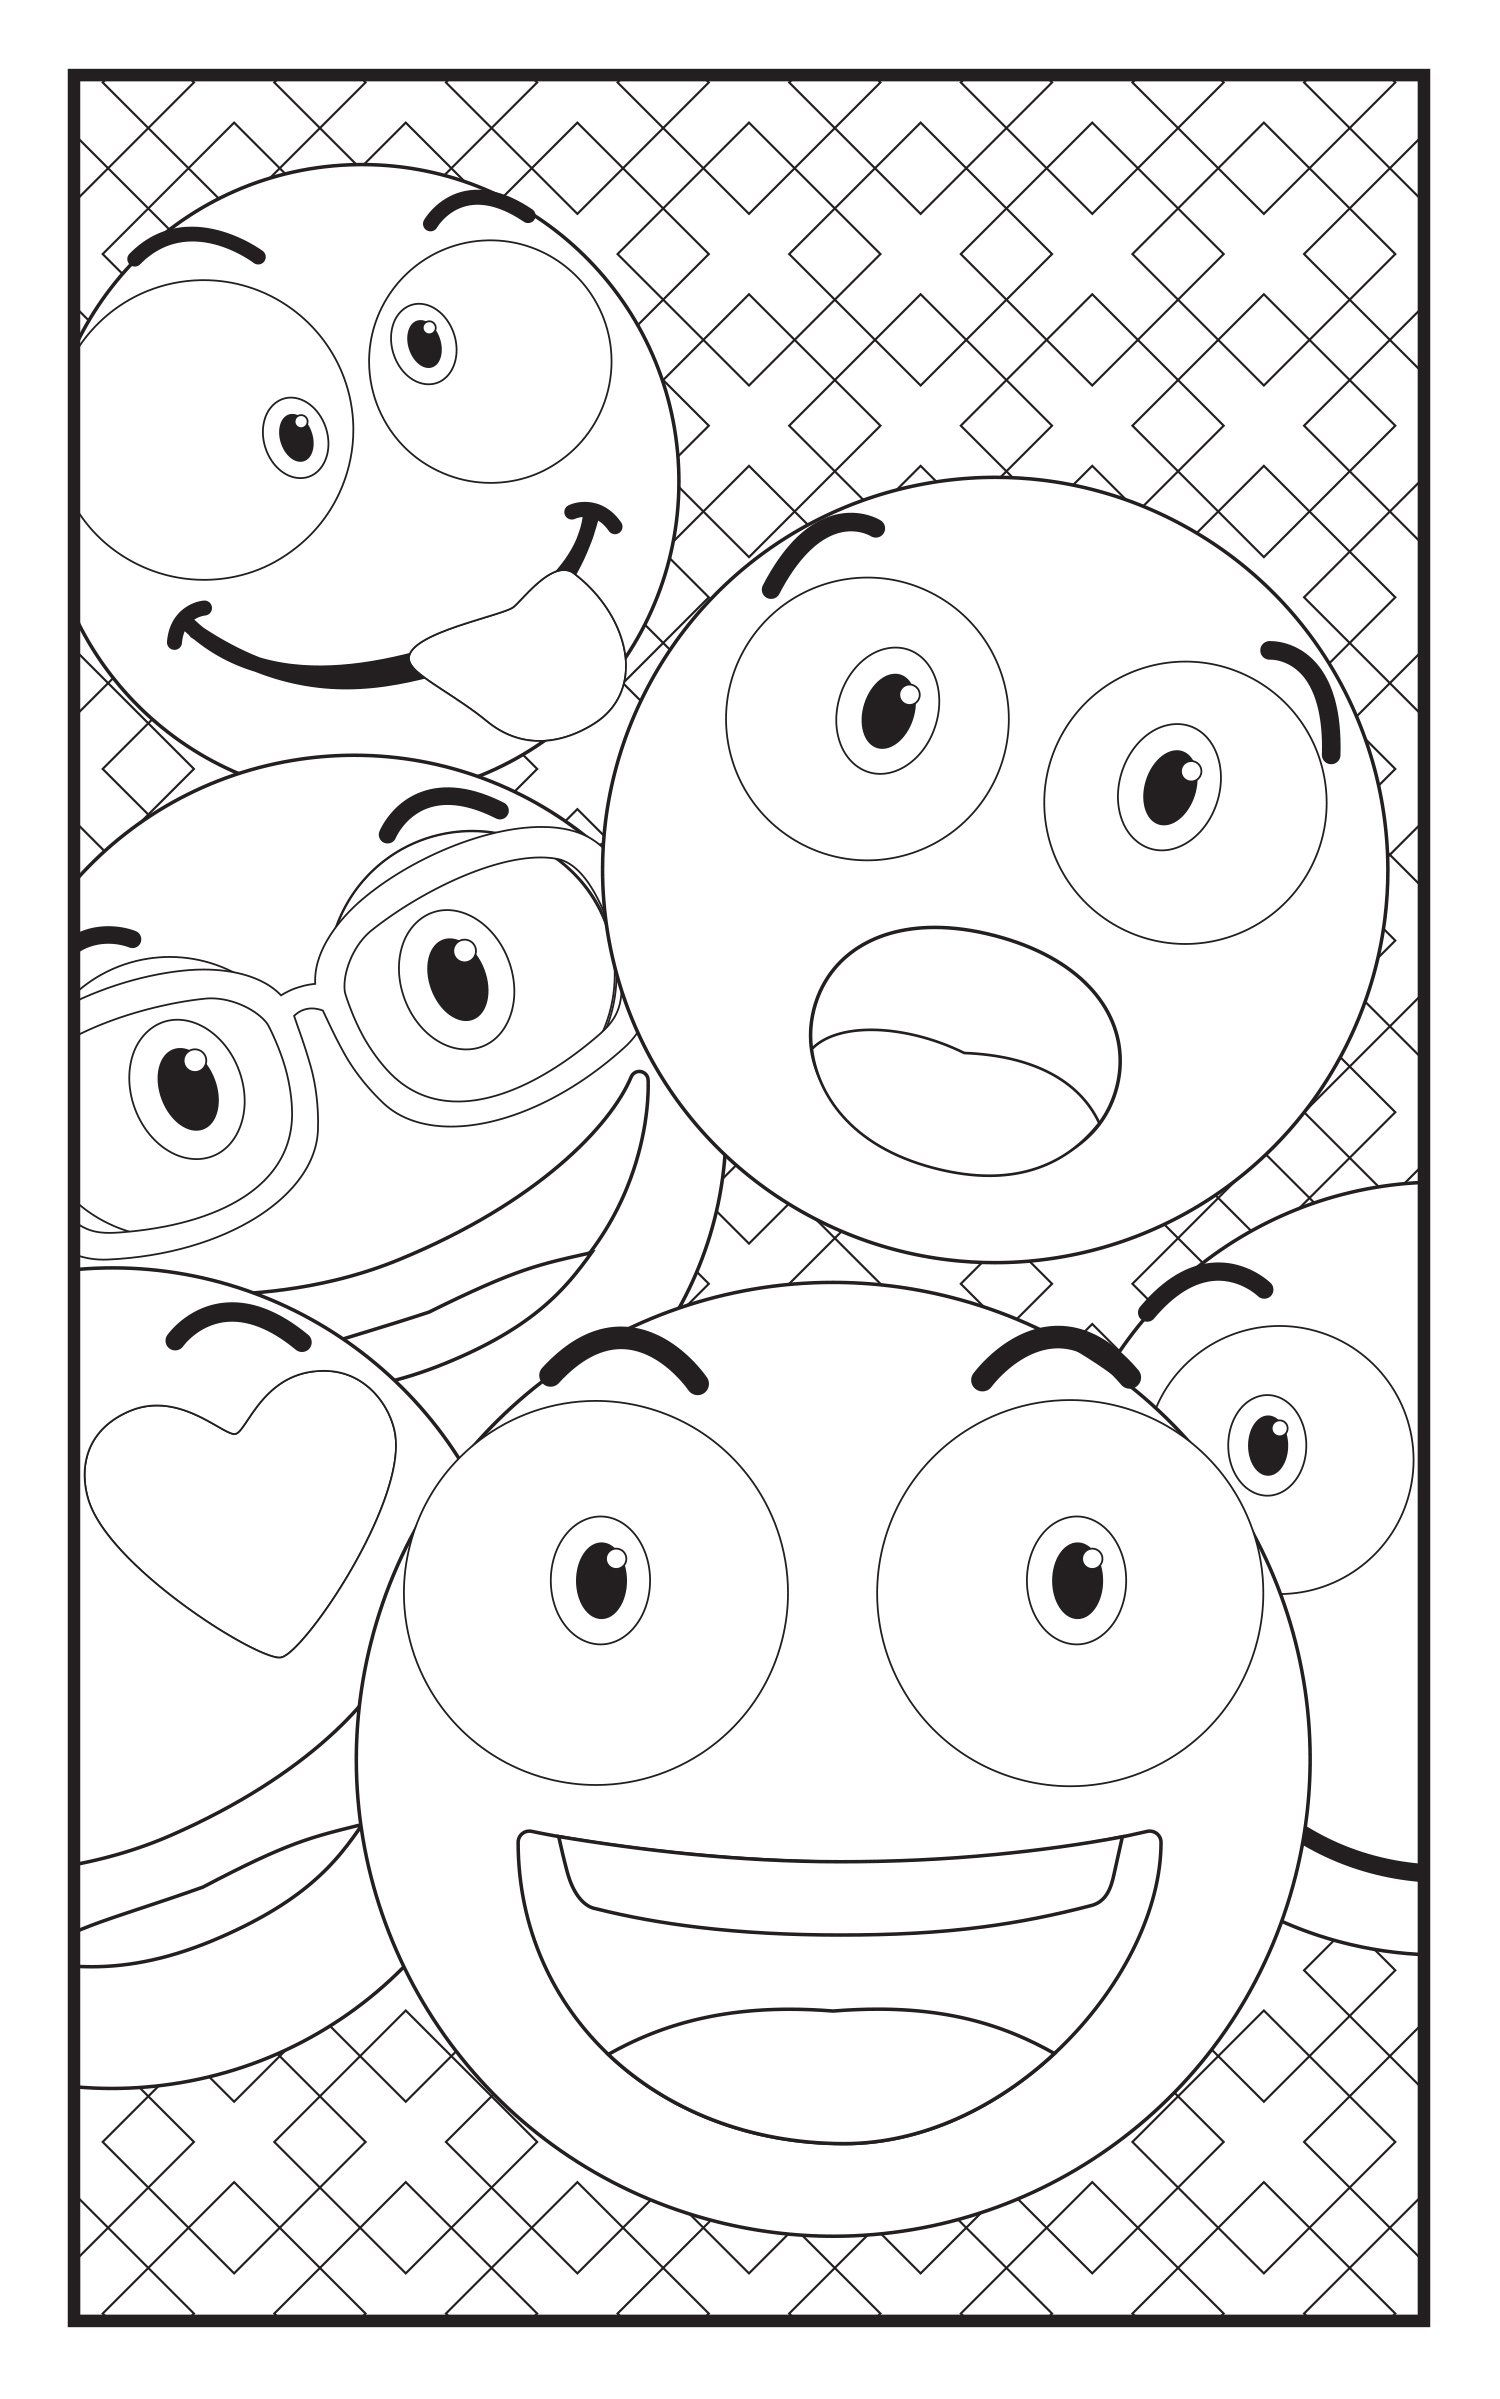 Sunglass emoji faces coloring pages sketch coloring page for Emoji coloring pages